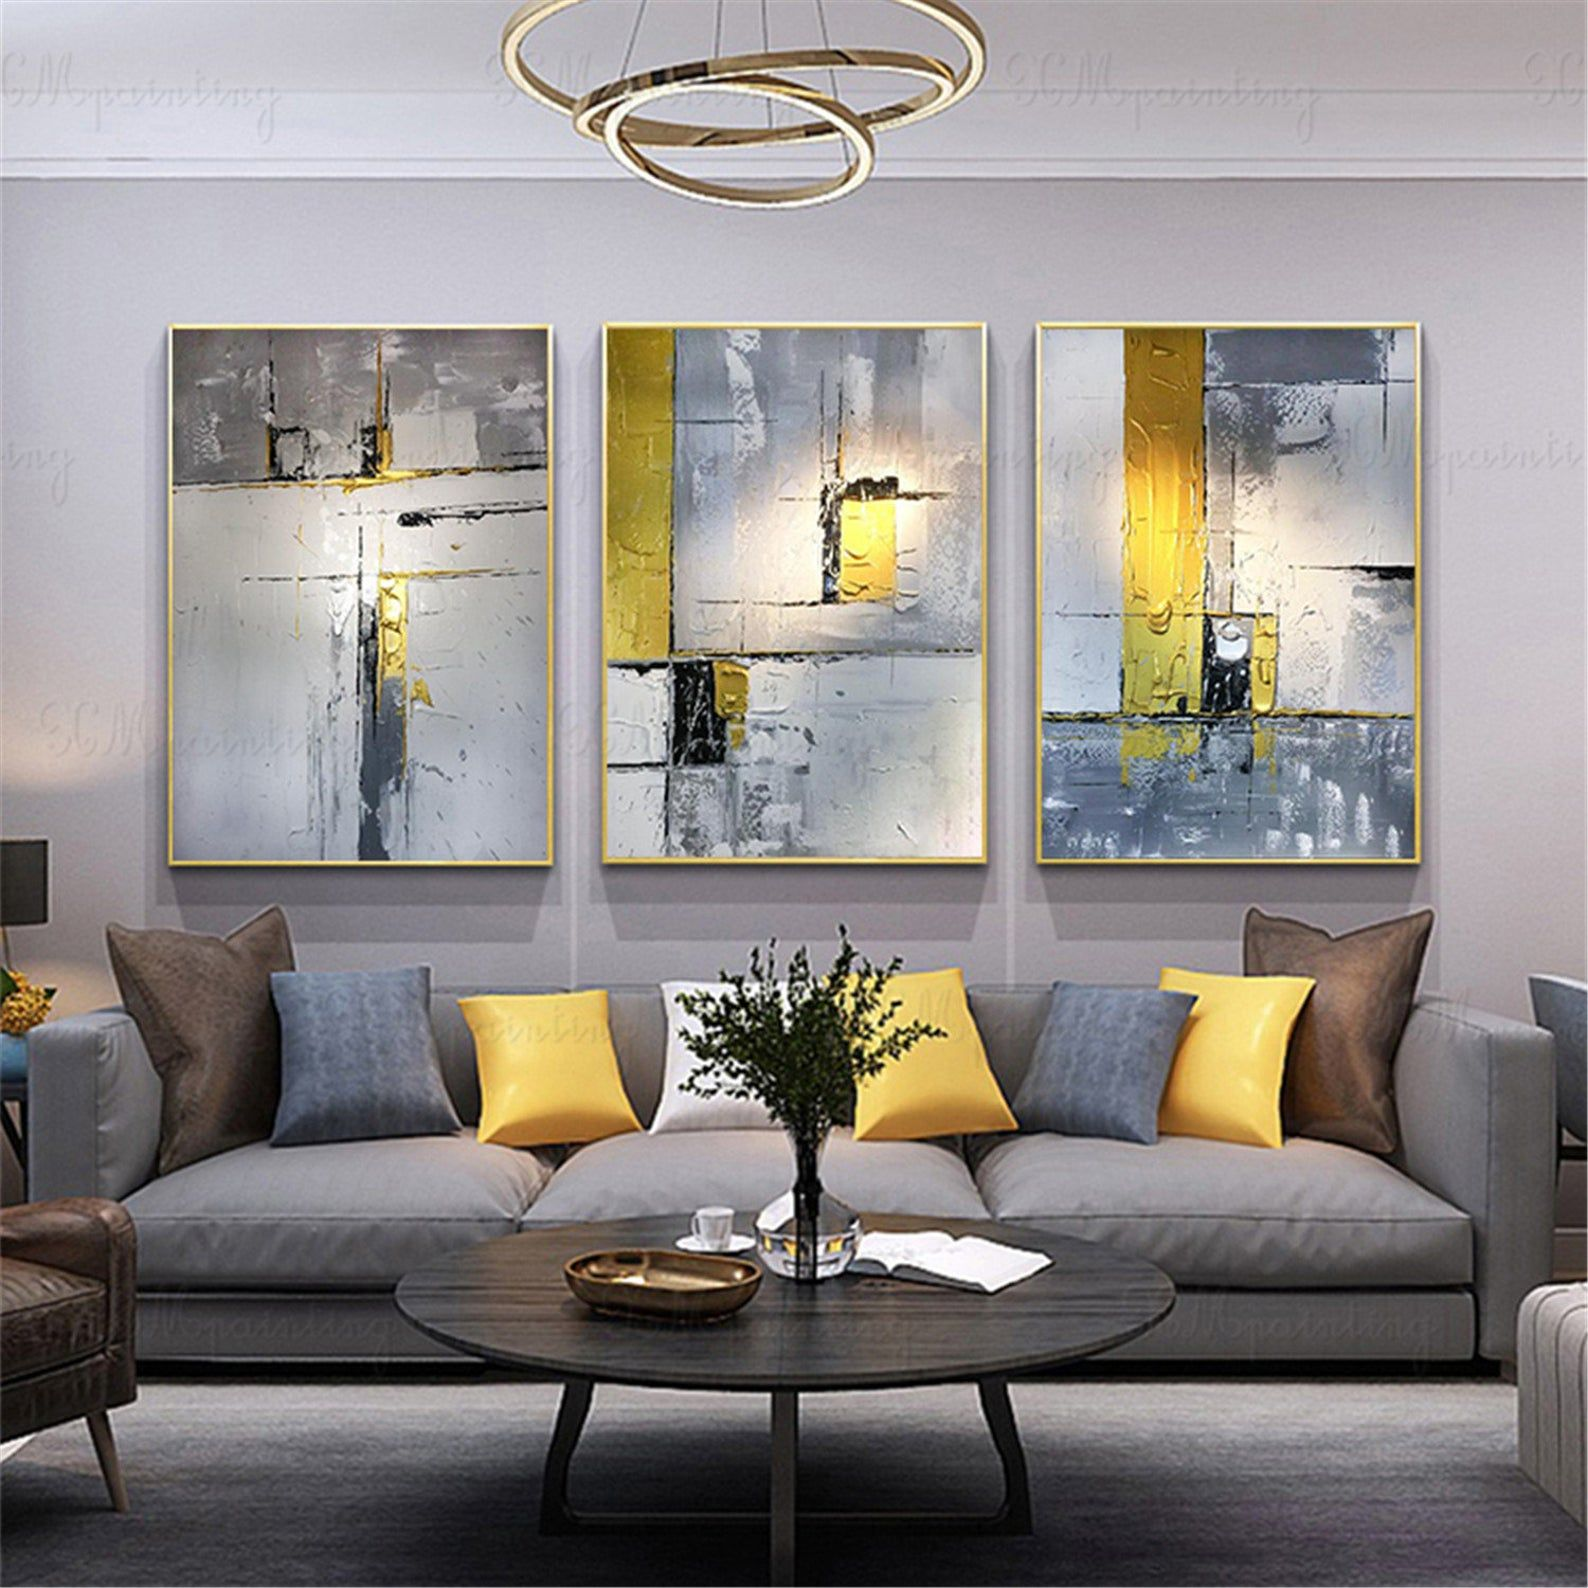 3 pieces gold art abstract painting canvas wall art on modern acrylic paintings for living room id=68249